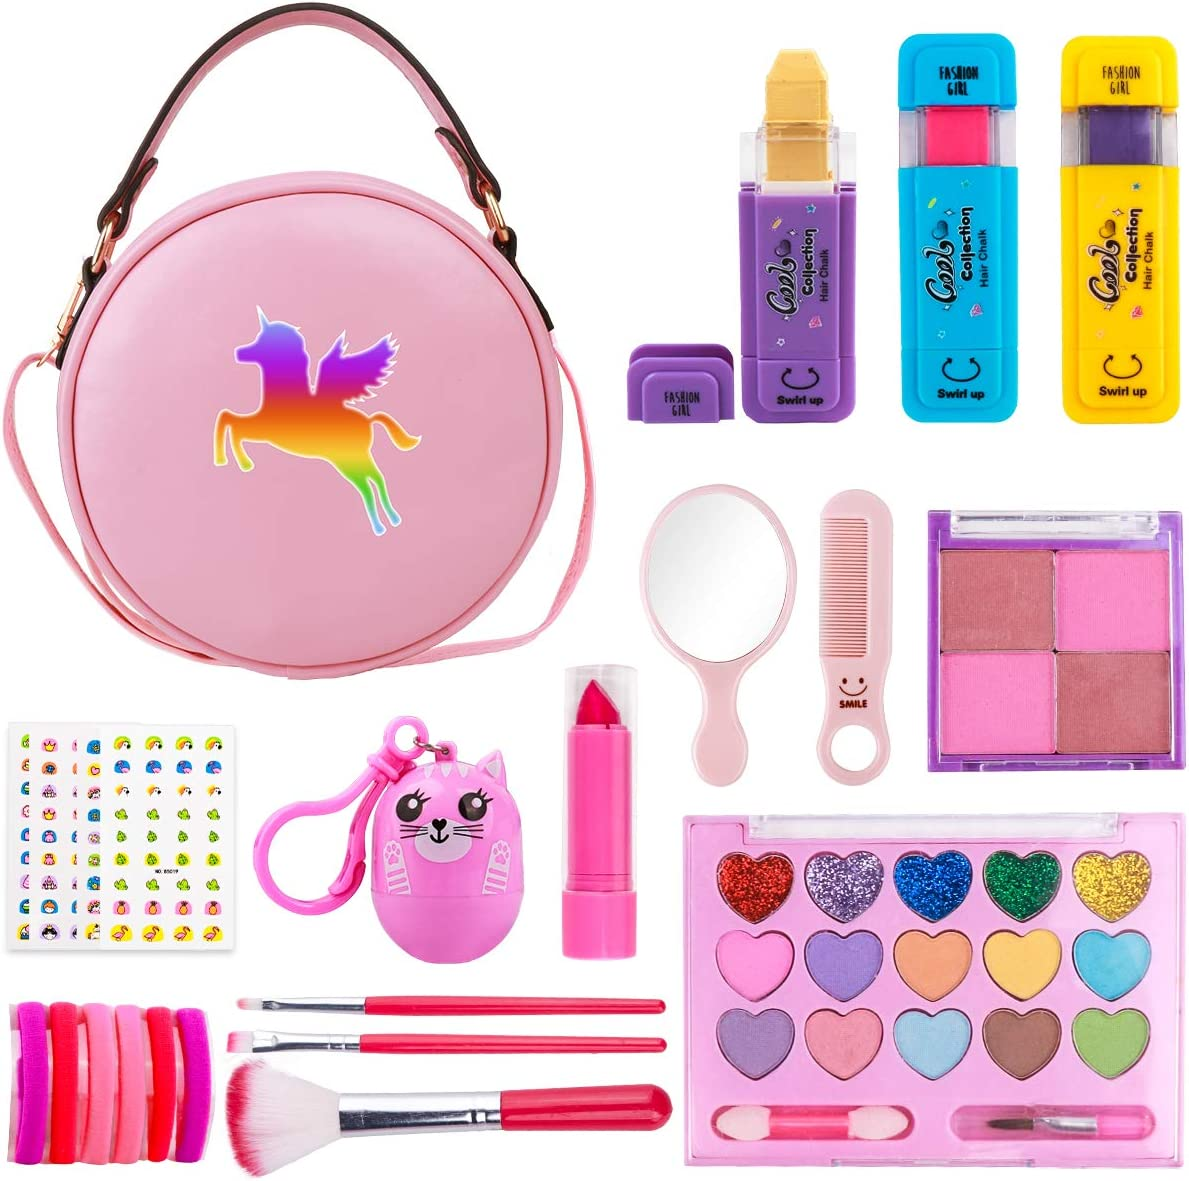 Girls Makeup Kit - Real Makeup Palette Set with Purse, Hair Chalks, Lipstick/Blush/Brush - My First Purse Toy Gift for Princess Little Girls Toddlers - Pretend Makeup Set for Girls Birthday Christmas